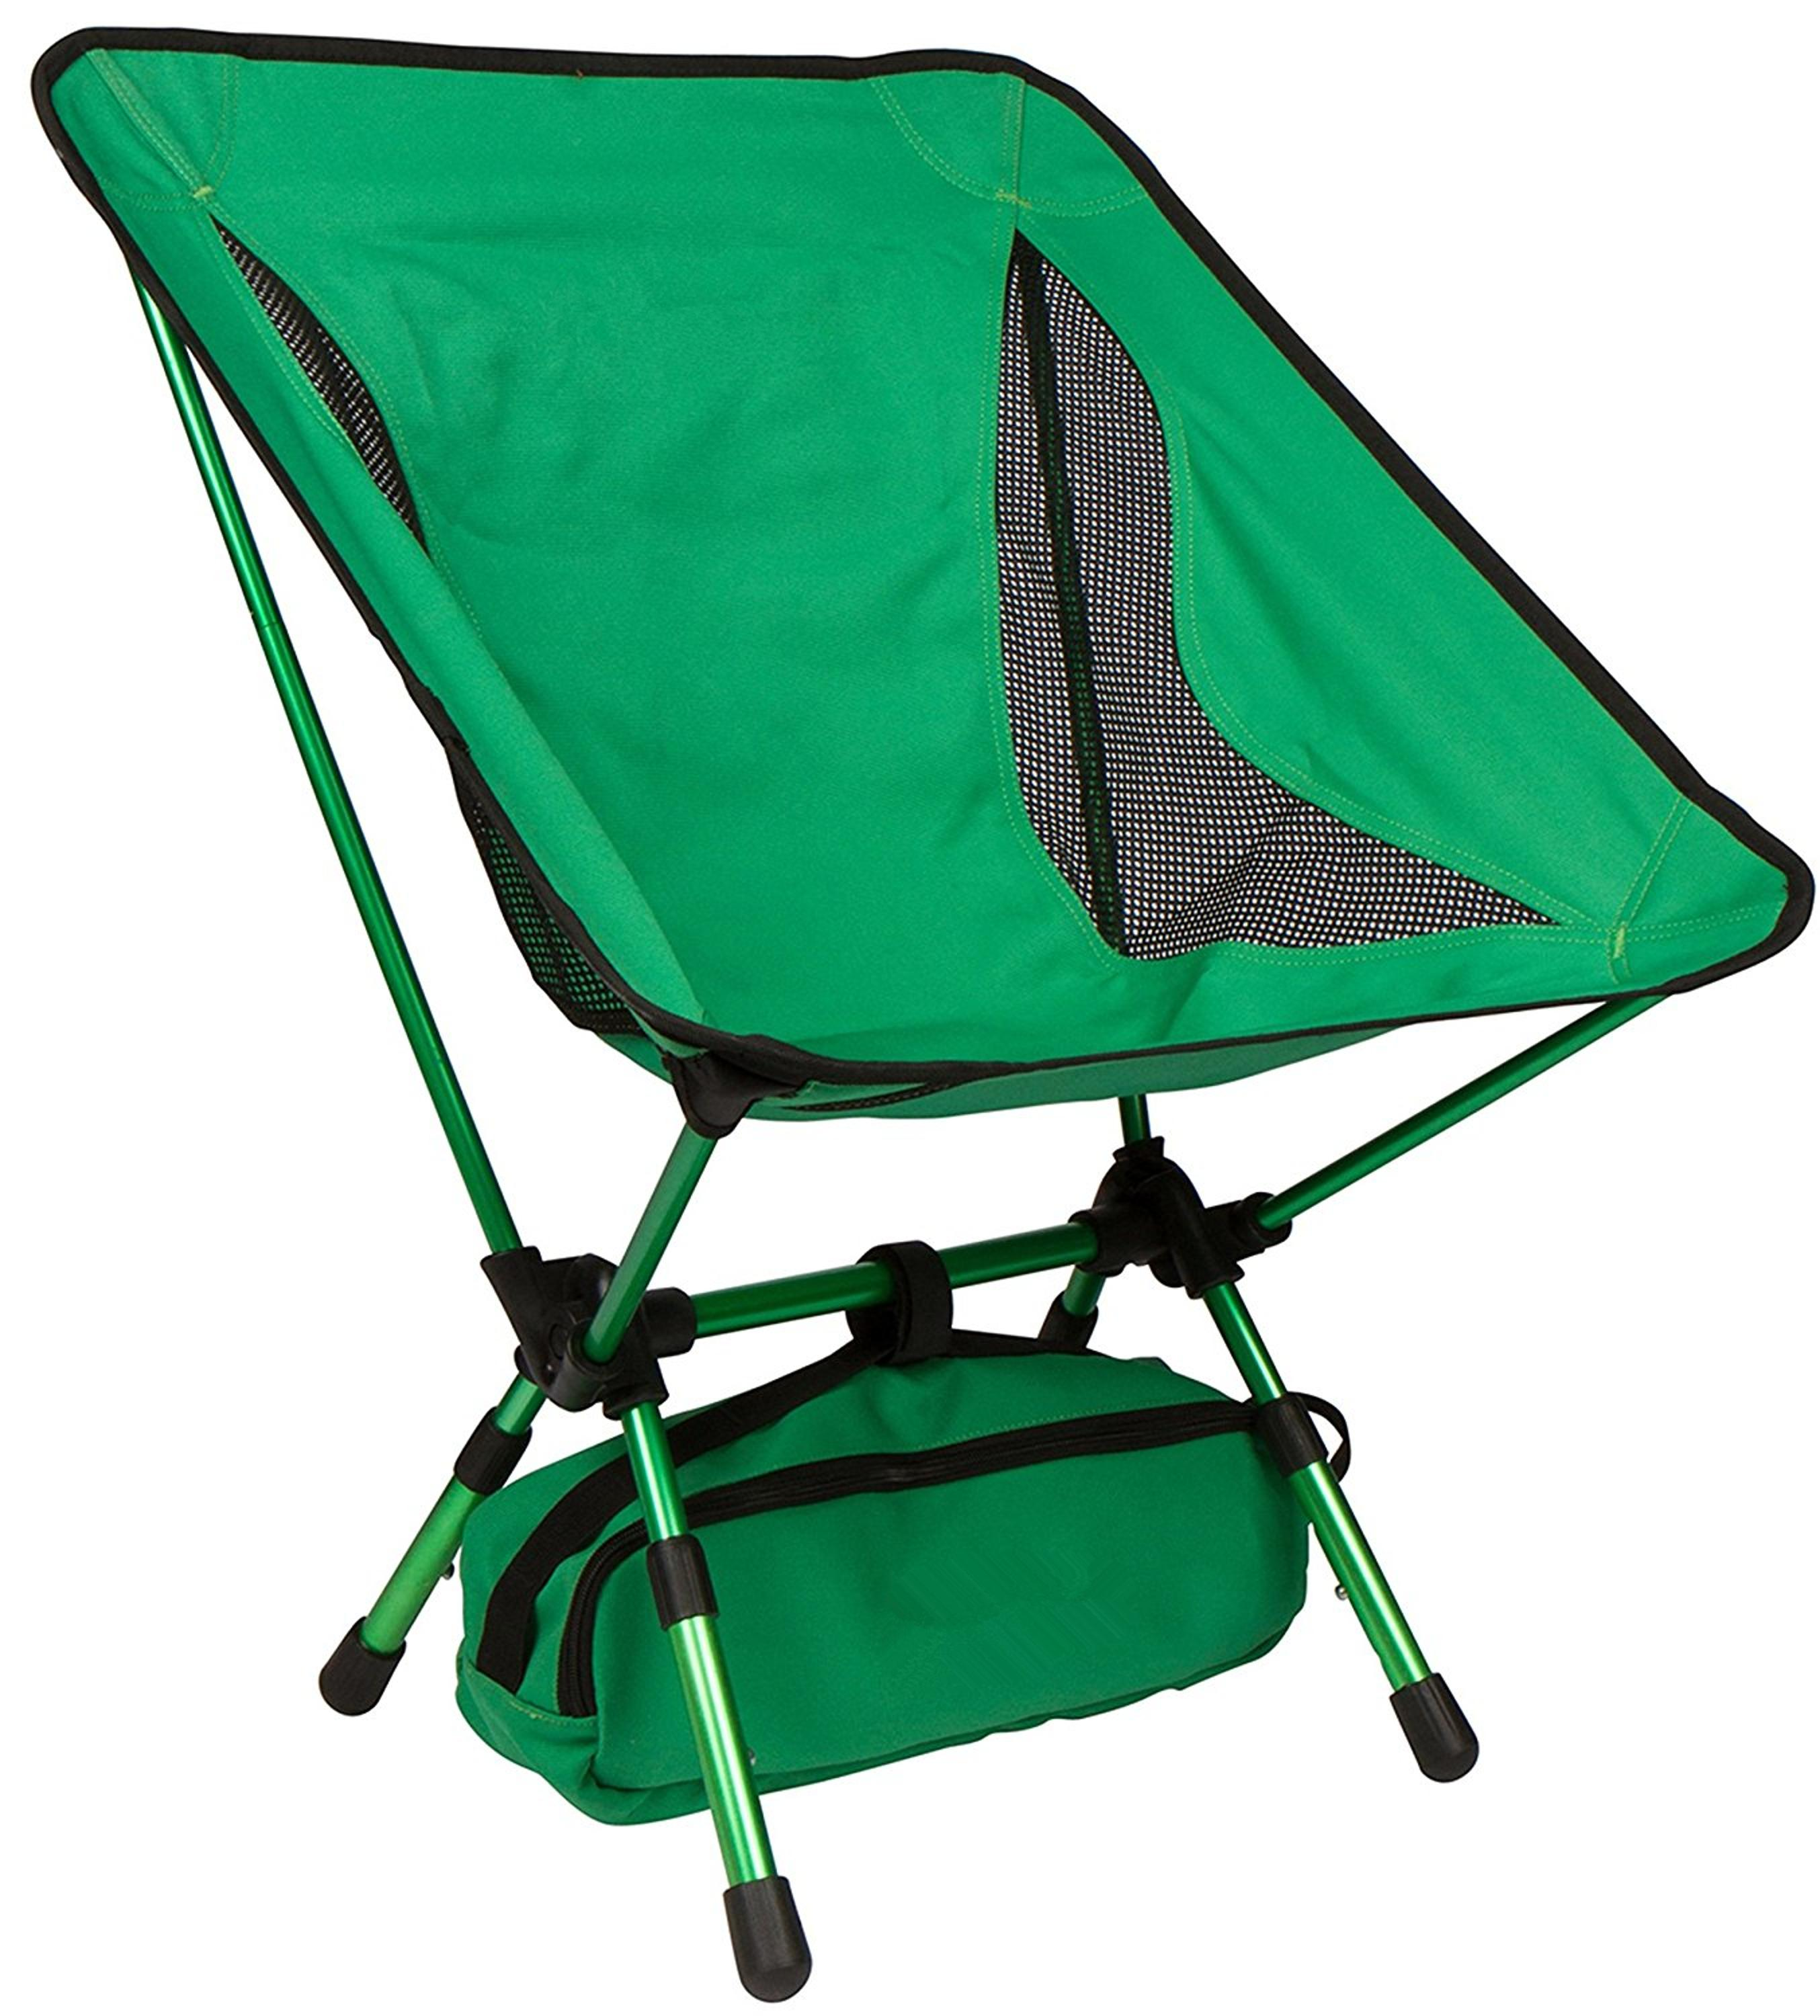 Folding Camp Chair Portable Camping Chairs Adjustable Height Compact Ultralight Folding Backpacking Chair With Carry Bag Buy Camping Chair Portable Camping